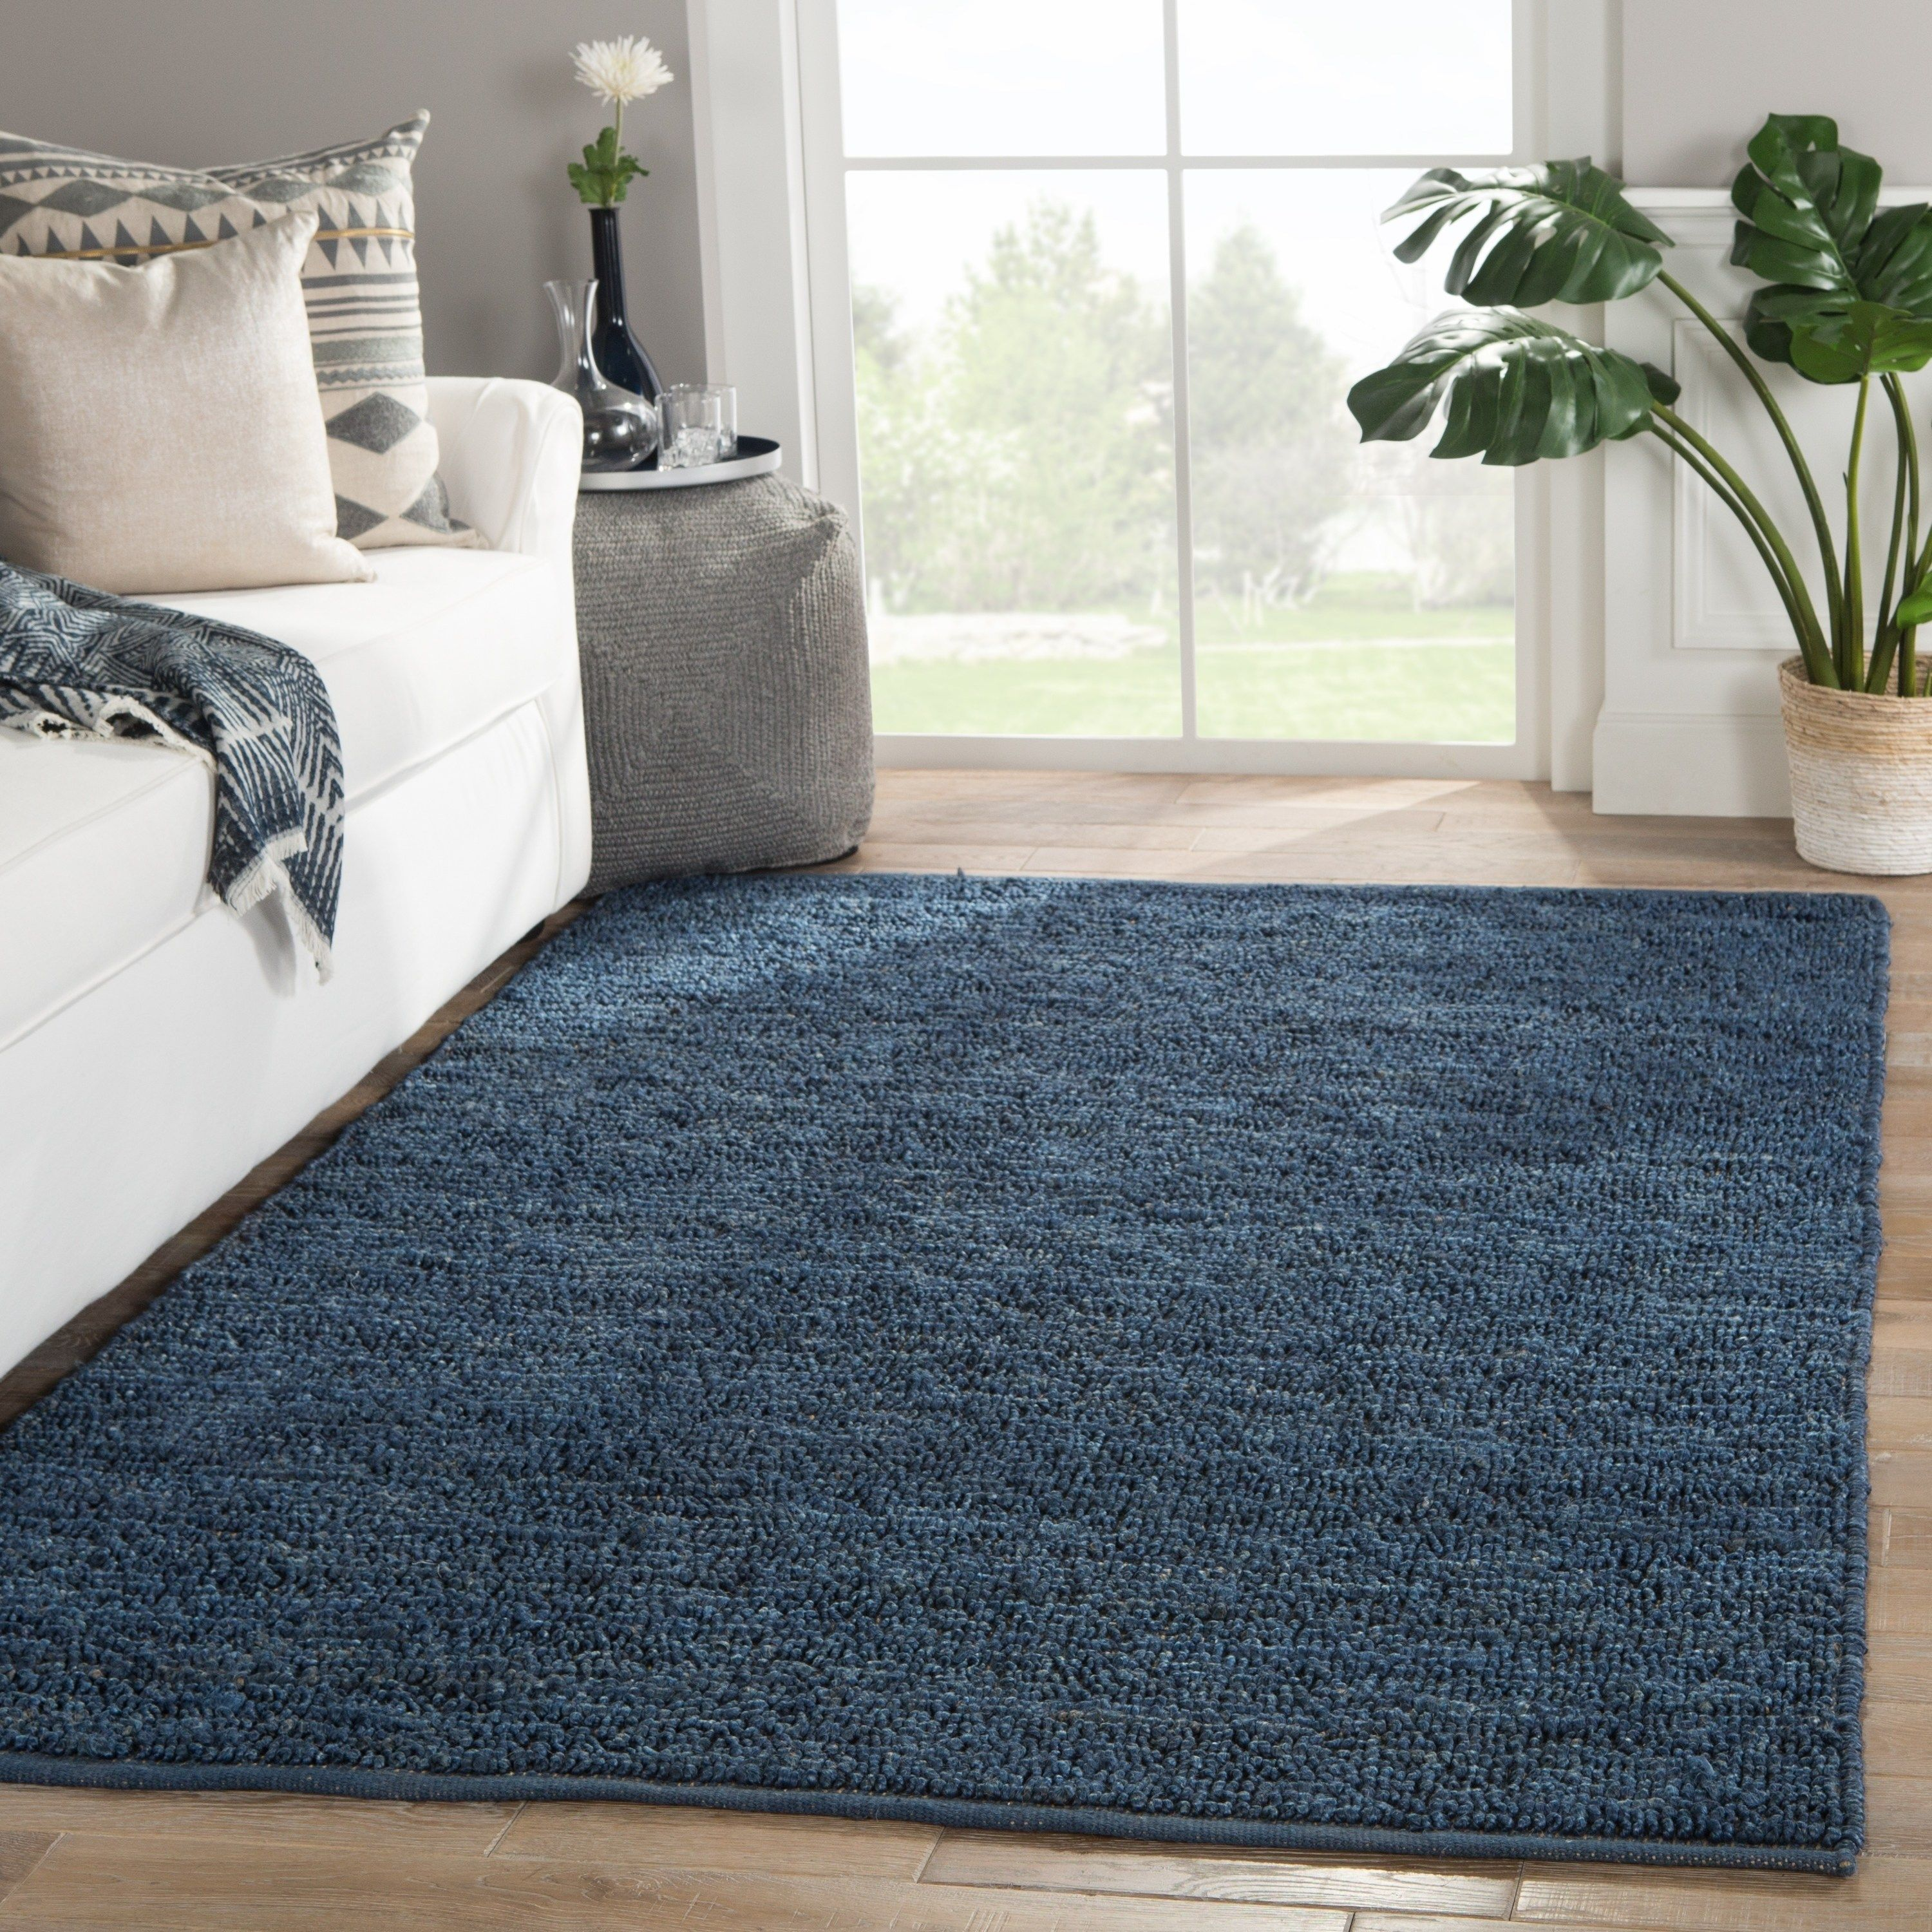 Online Shopping Bedding Furniture Electronics Jewelry Clothing More Area Rugs Natural Area Rugs Blue Area Rugs